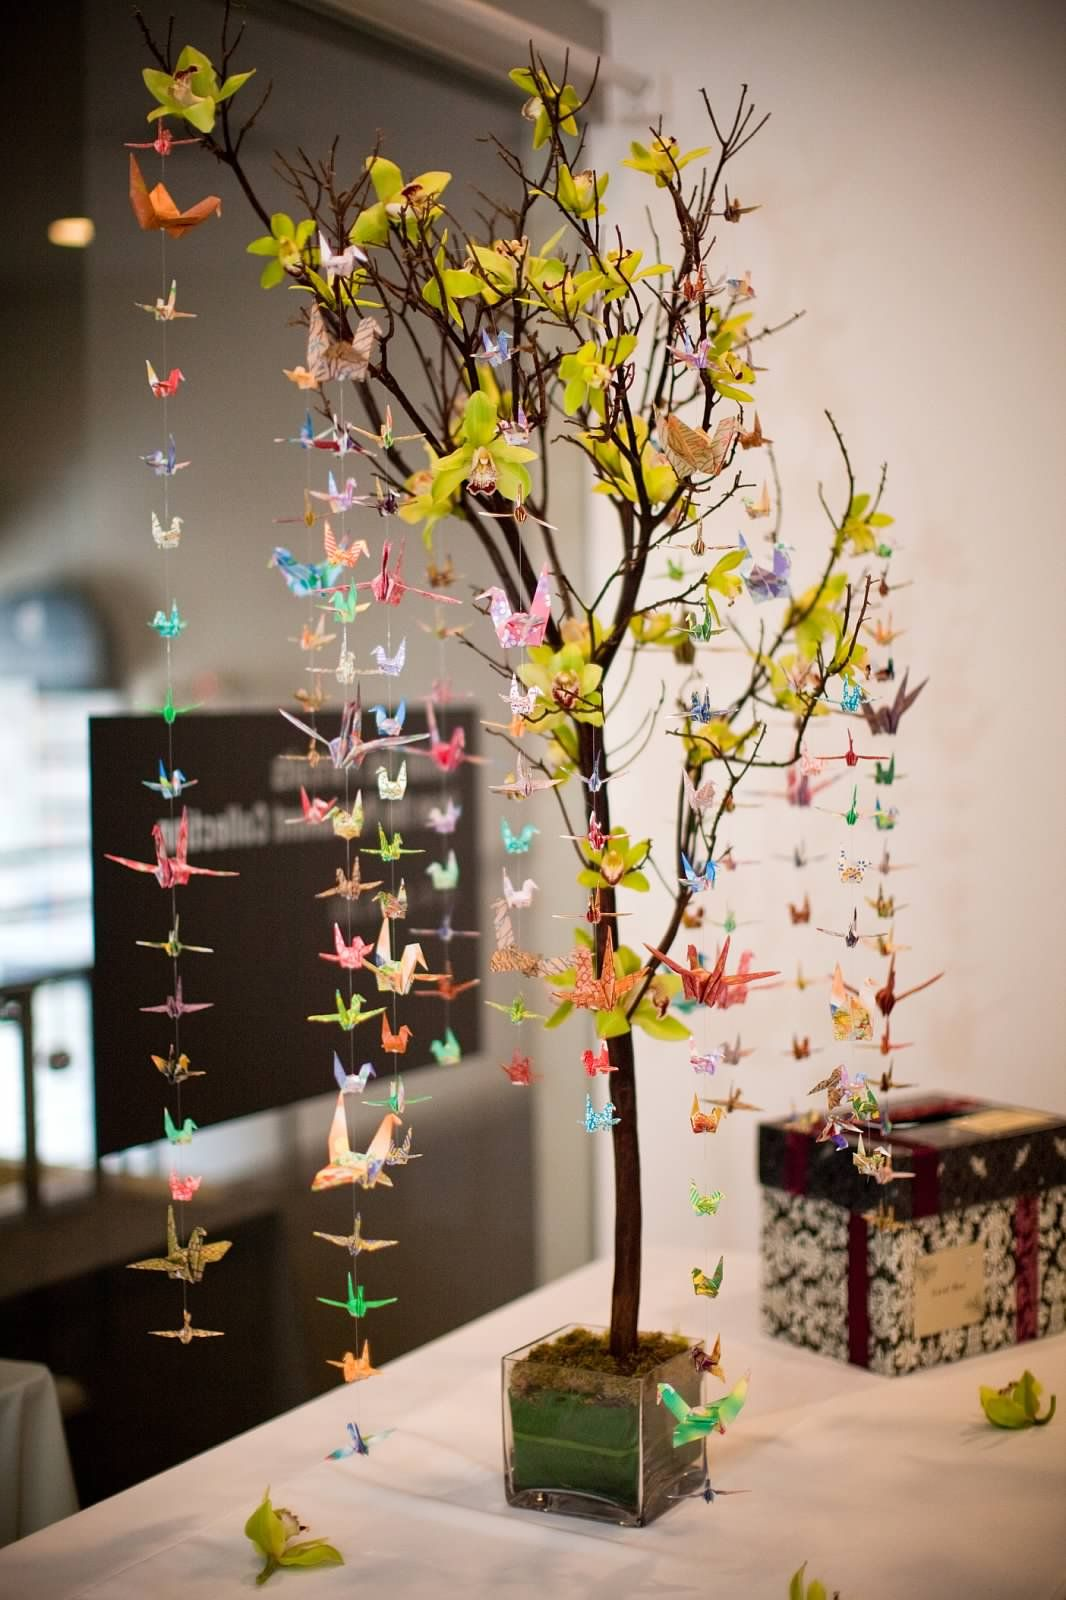 Manzanita branch decorated with origami cranes and